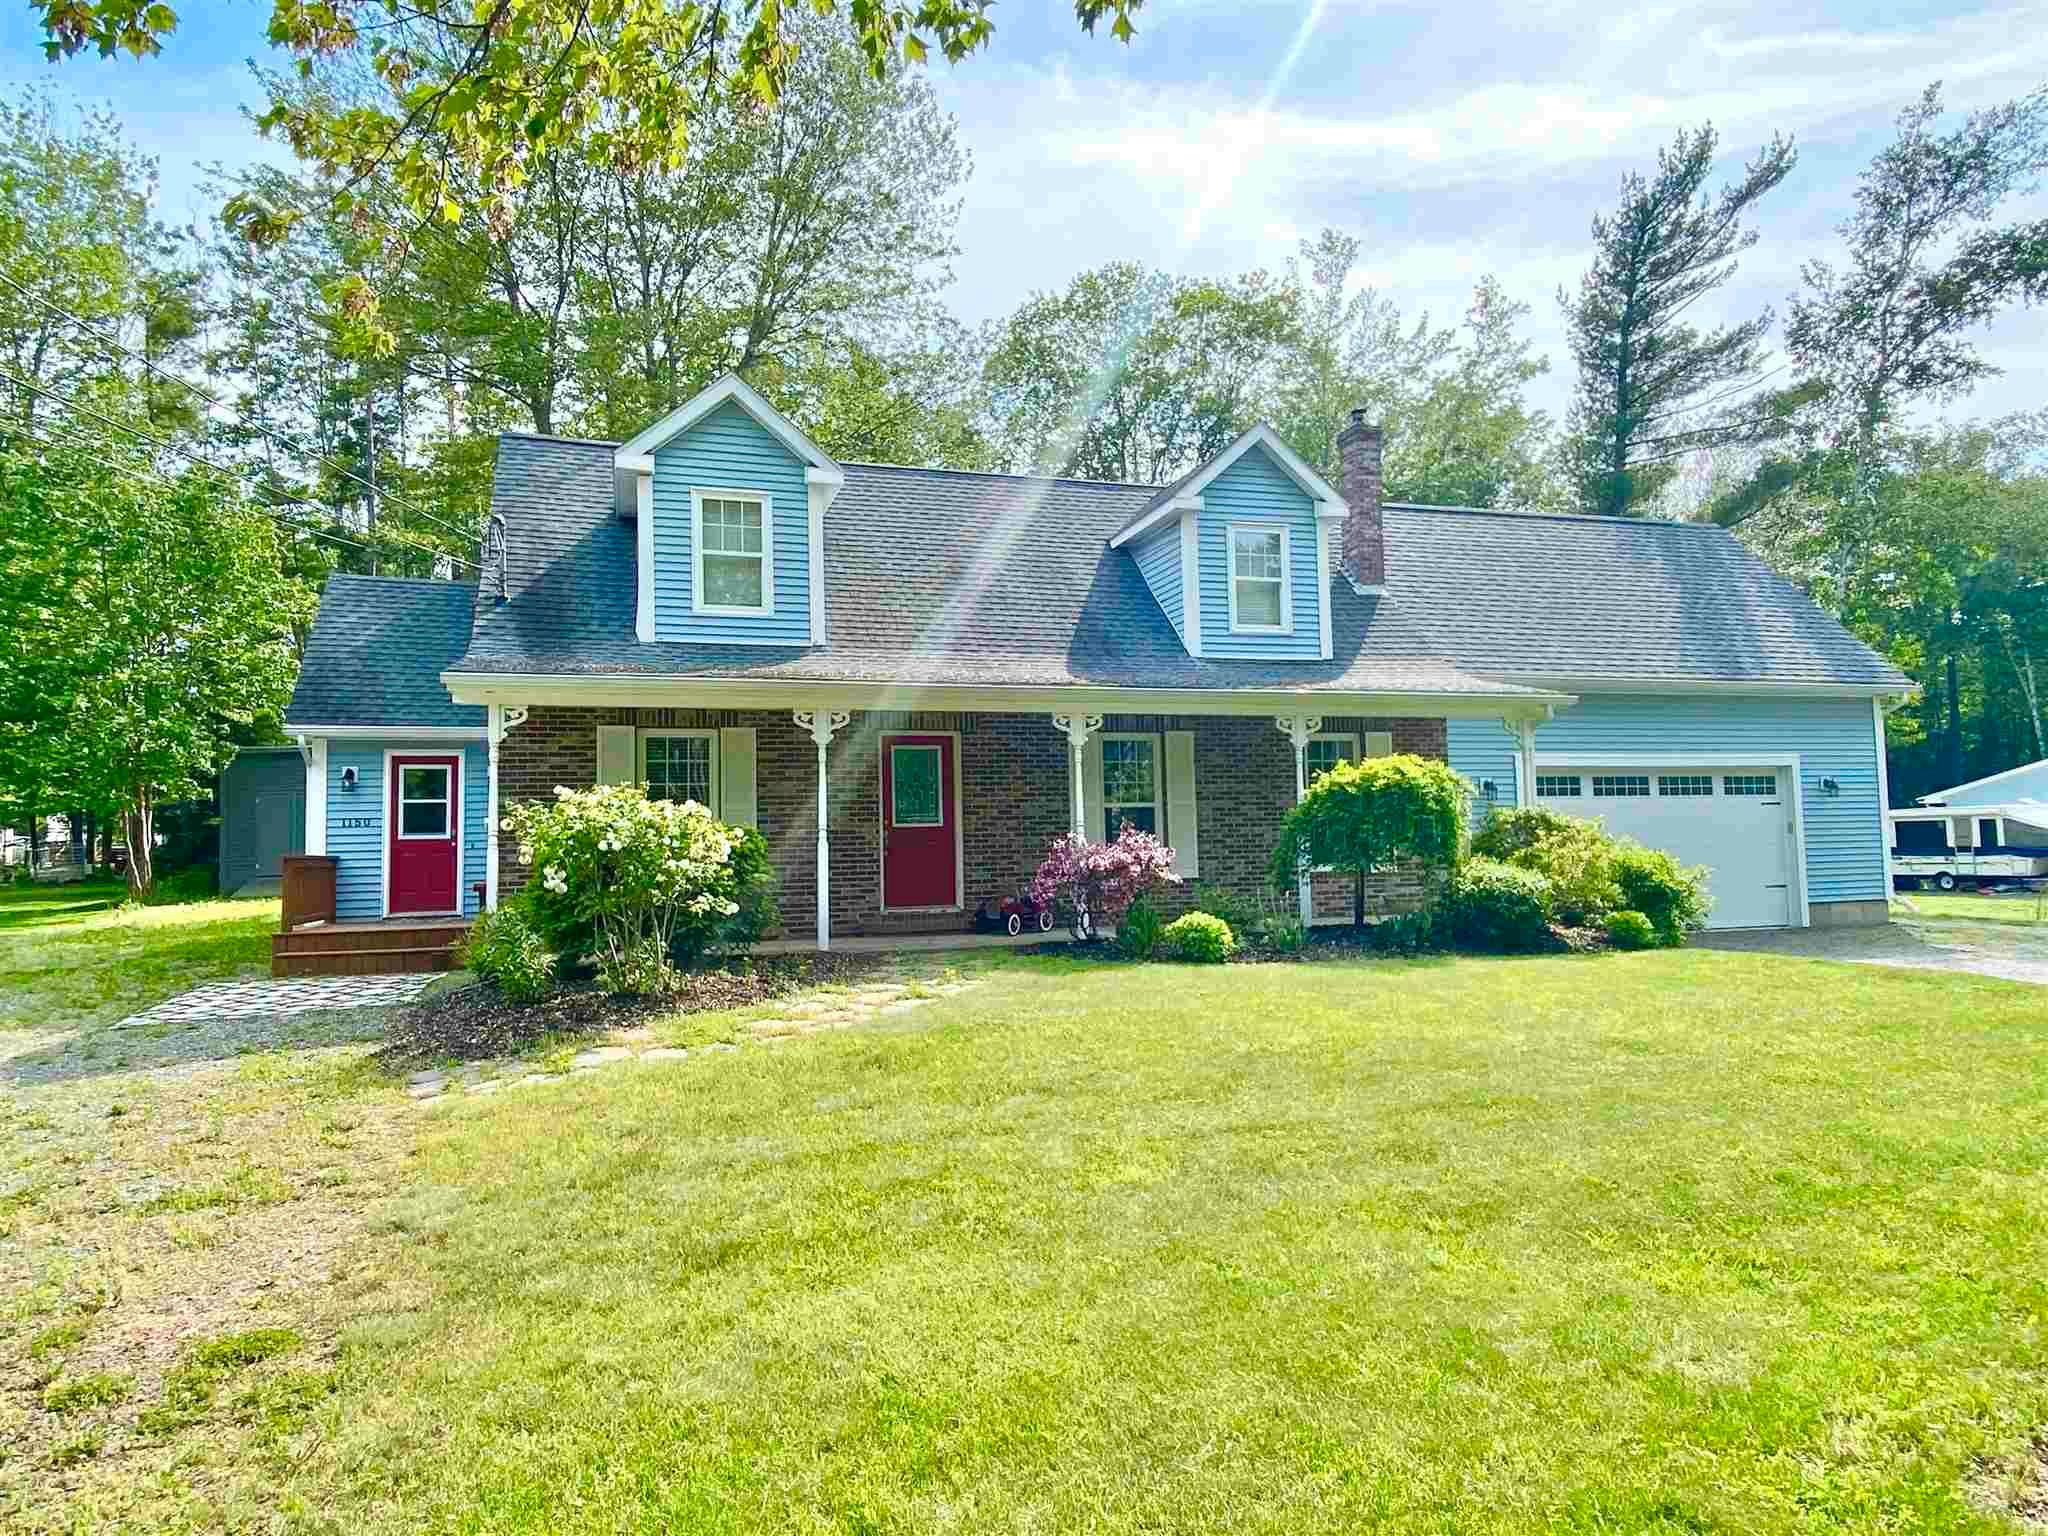 Main Photo: 1150 Pine Crest Drive in Centreville: 404-Kings County Residential for sale (Annapolis Valley)  : MLS®# 202114627